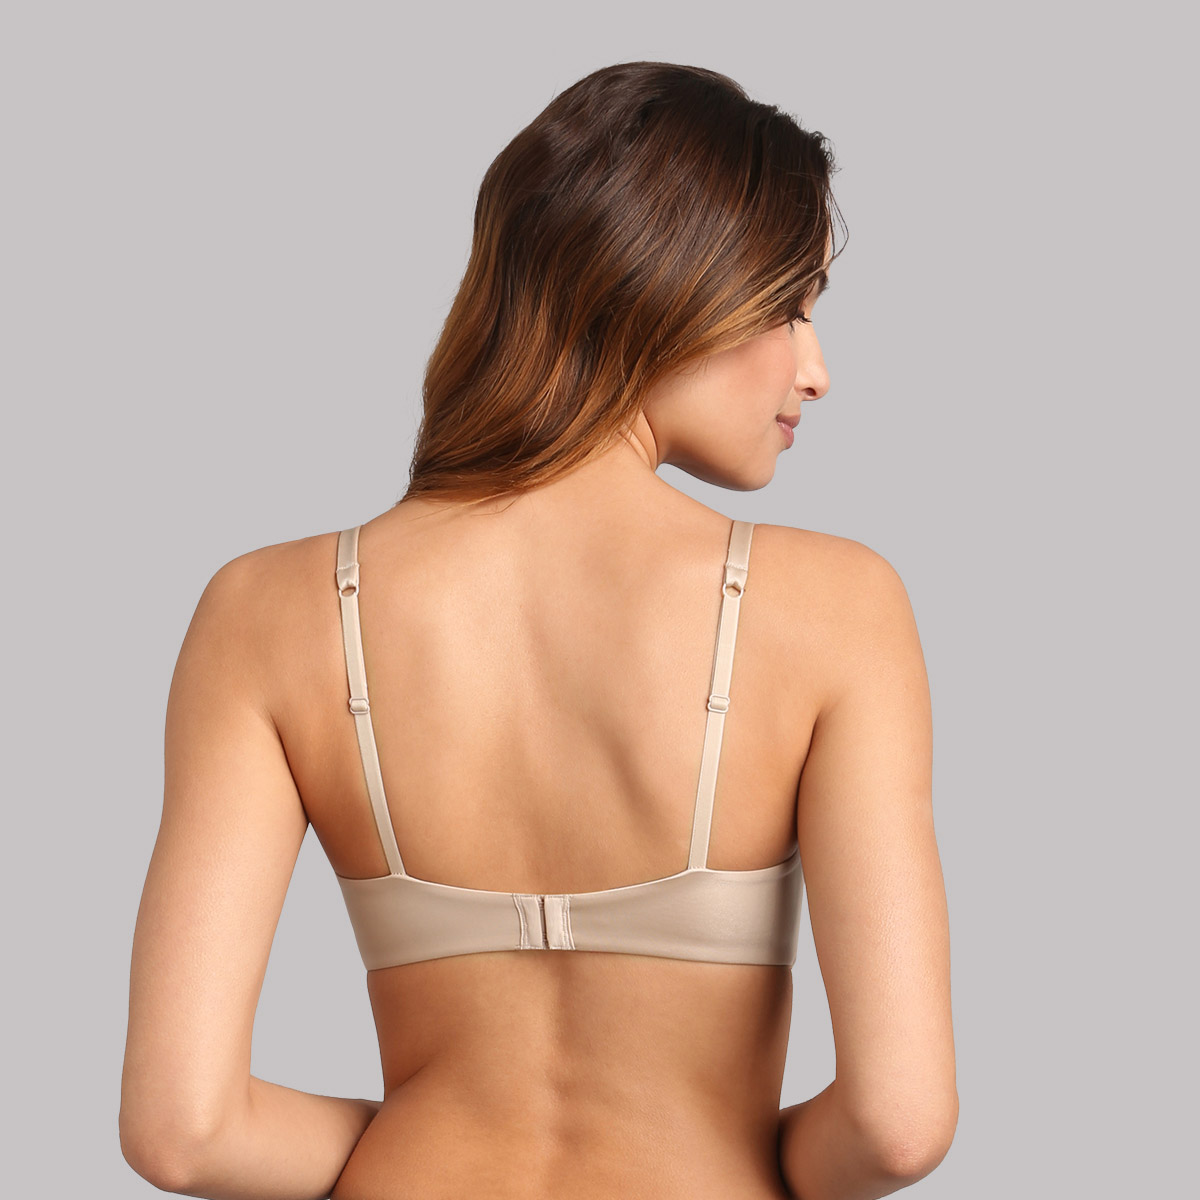 Full cup bra with removable underwires in light brown 24h Absolute Soft, , PLAYTEX